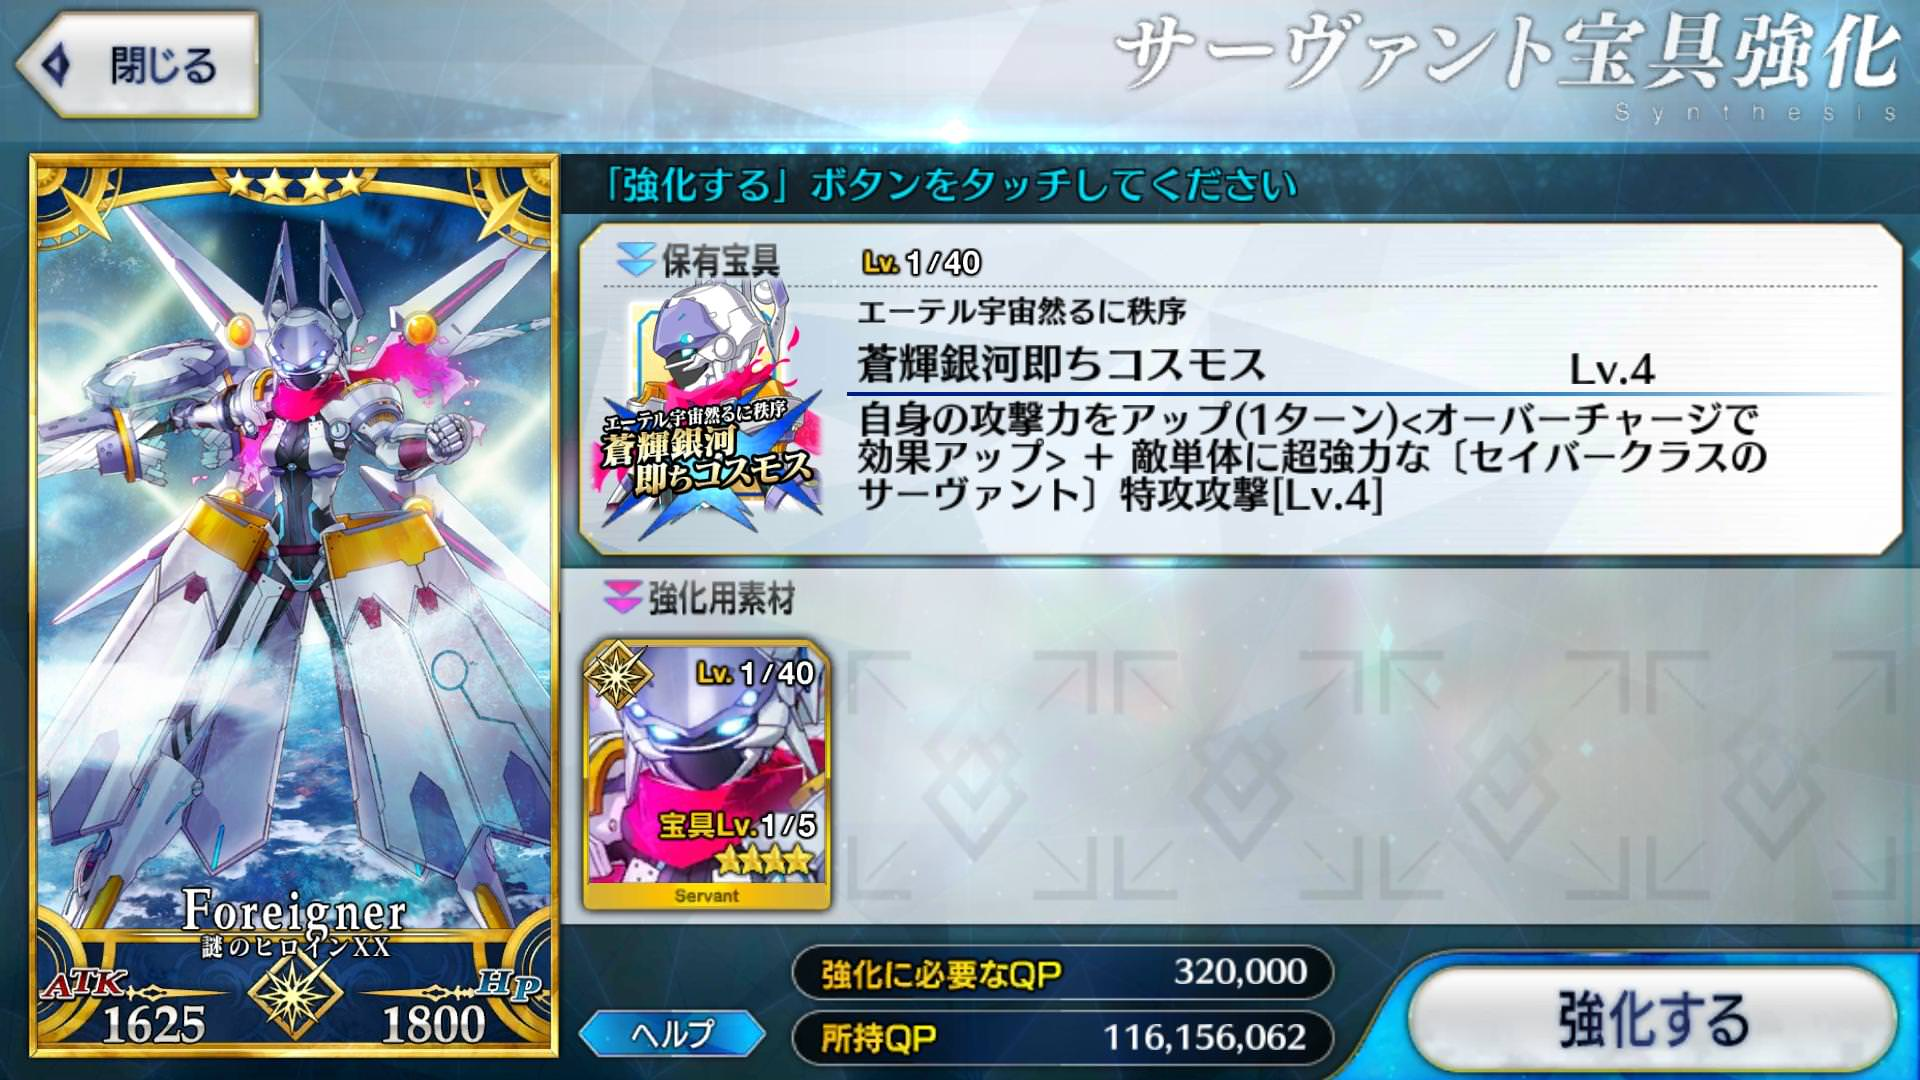 Fate/Grand Order] All-around Discussions v2 (3600 - ) - Forums